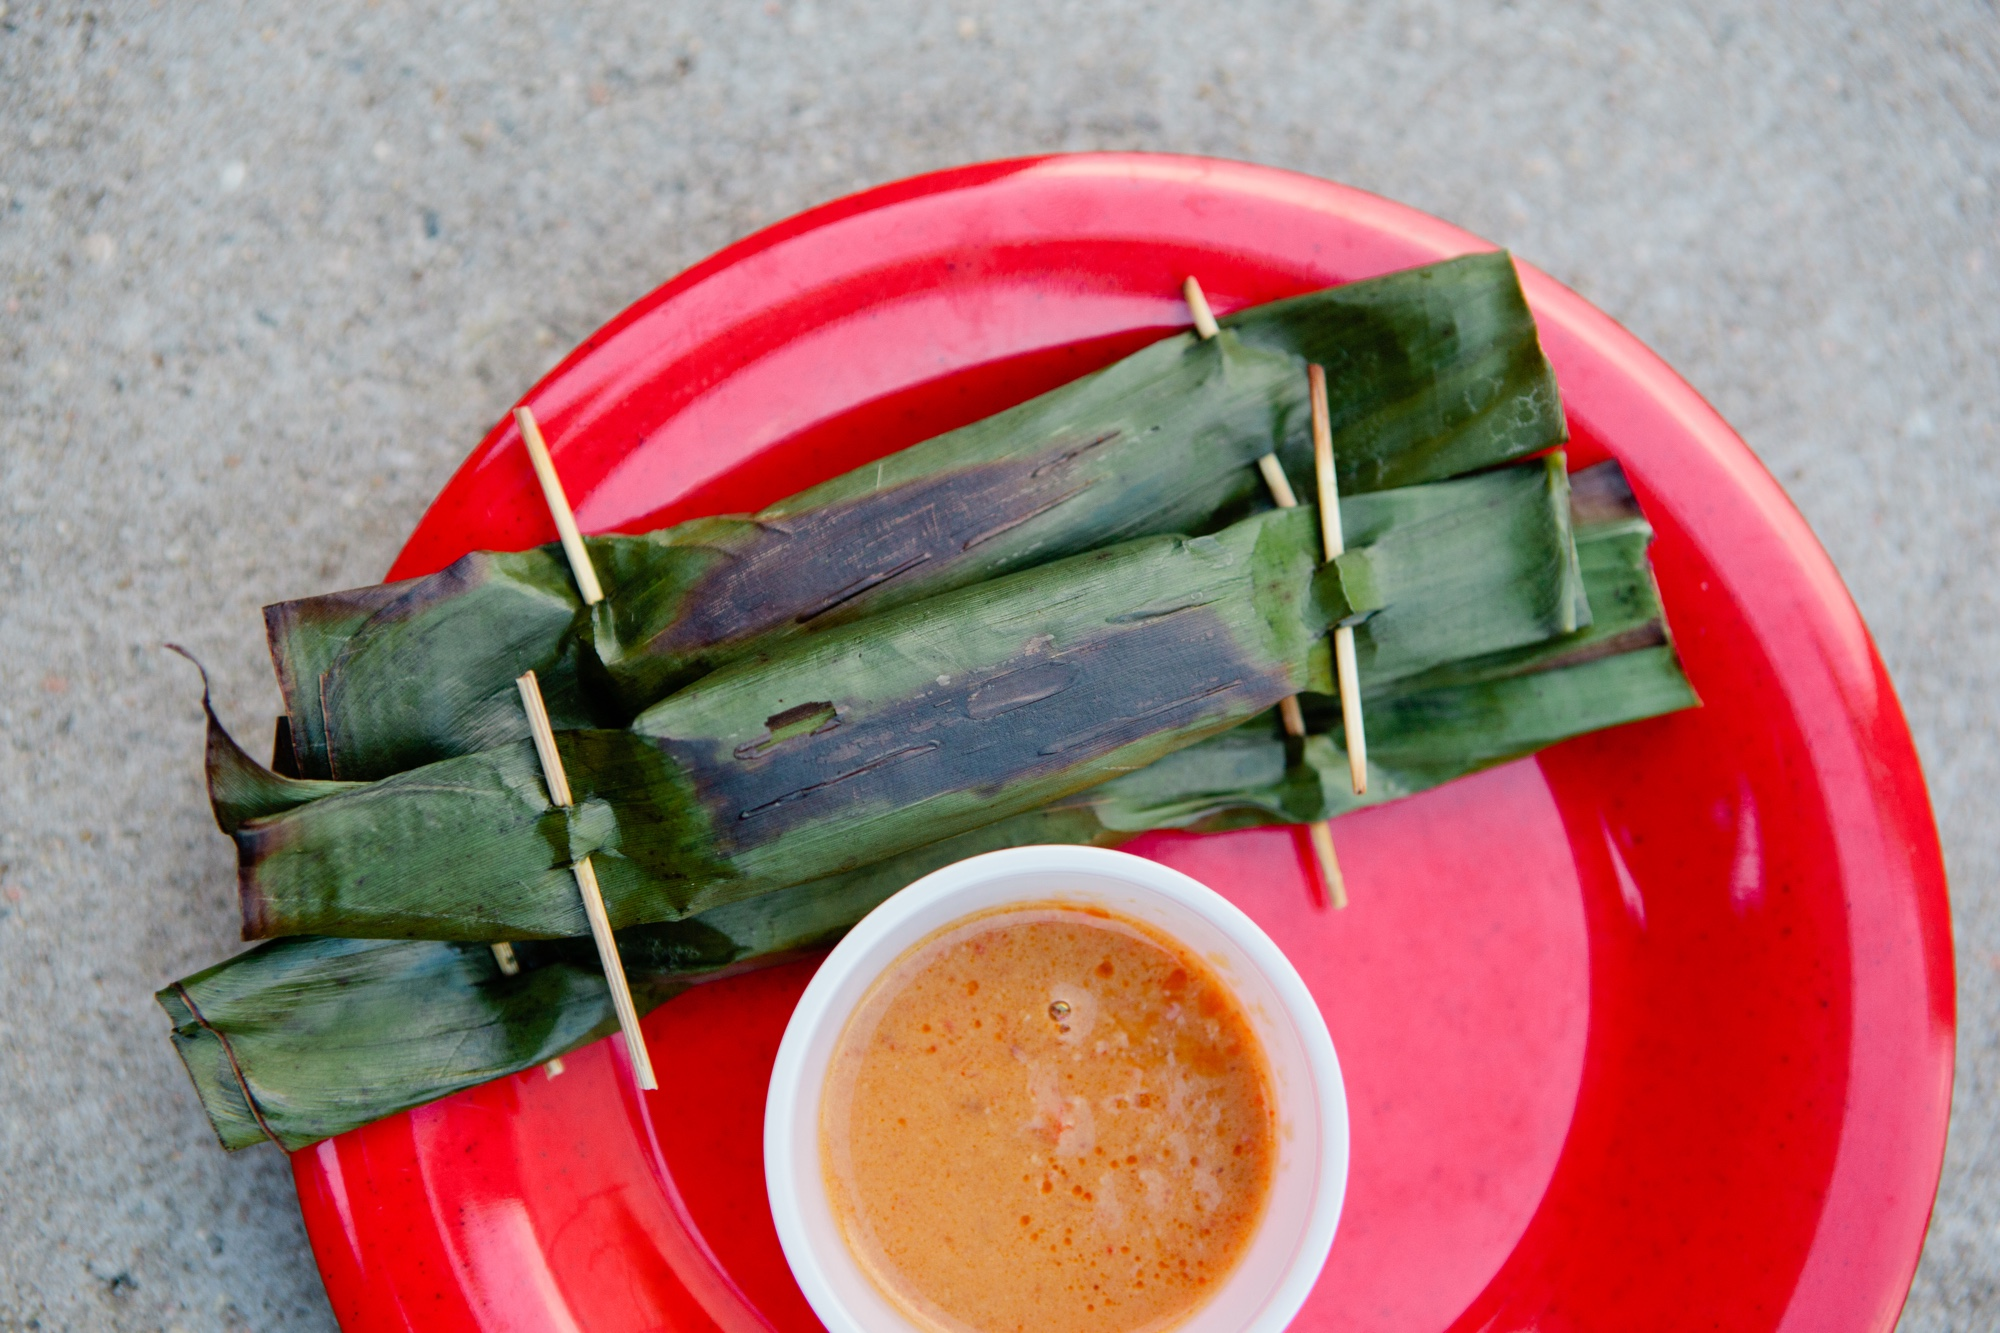 On the menu is Otak-Otak: Grilled fish dumpling wrapped in banana leaf and served with a spicy peanut sauce.